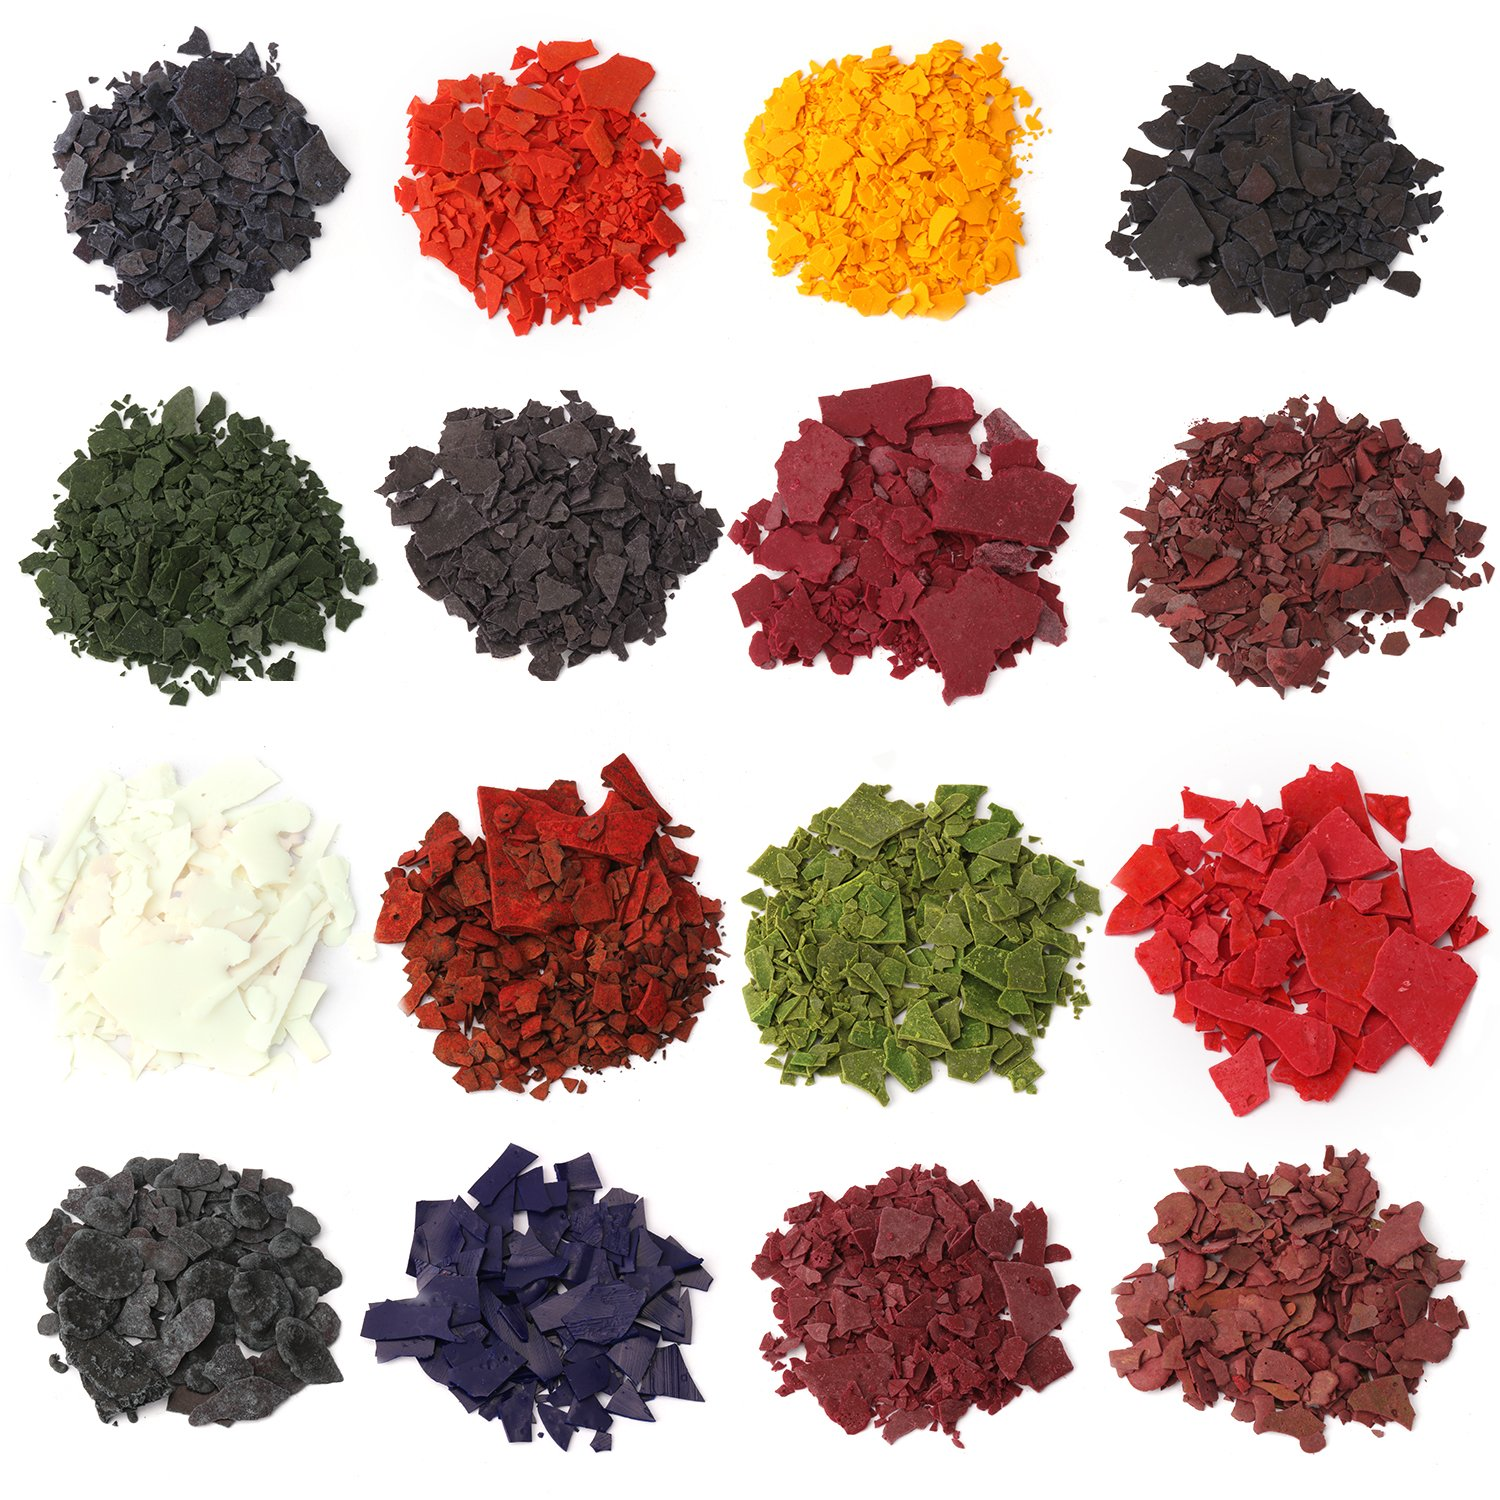 Candle Wax Dye - Dye Chips for Making Candles - 16 Dye Colors - A Great  Choice of Colors - 0 15 Ounce Each Color - DIY Candle